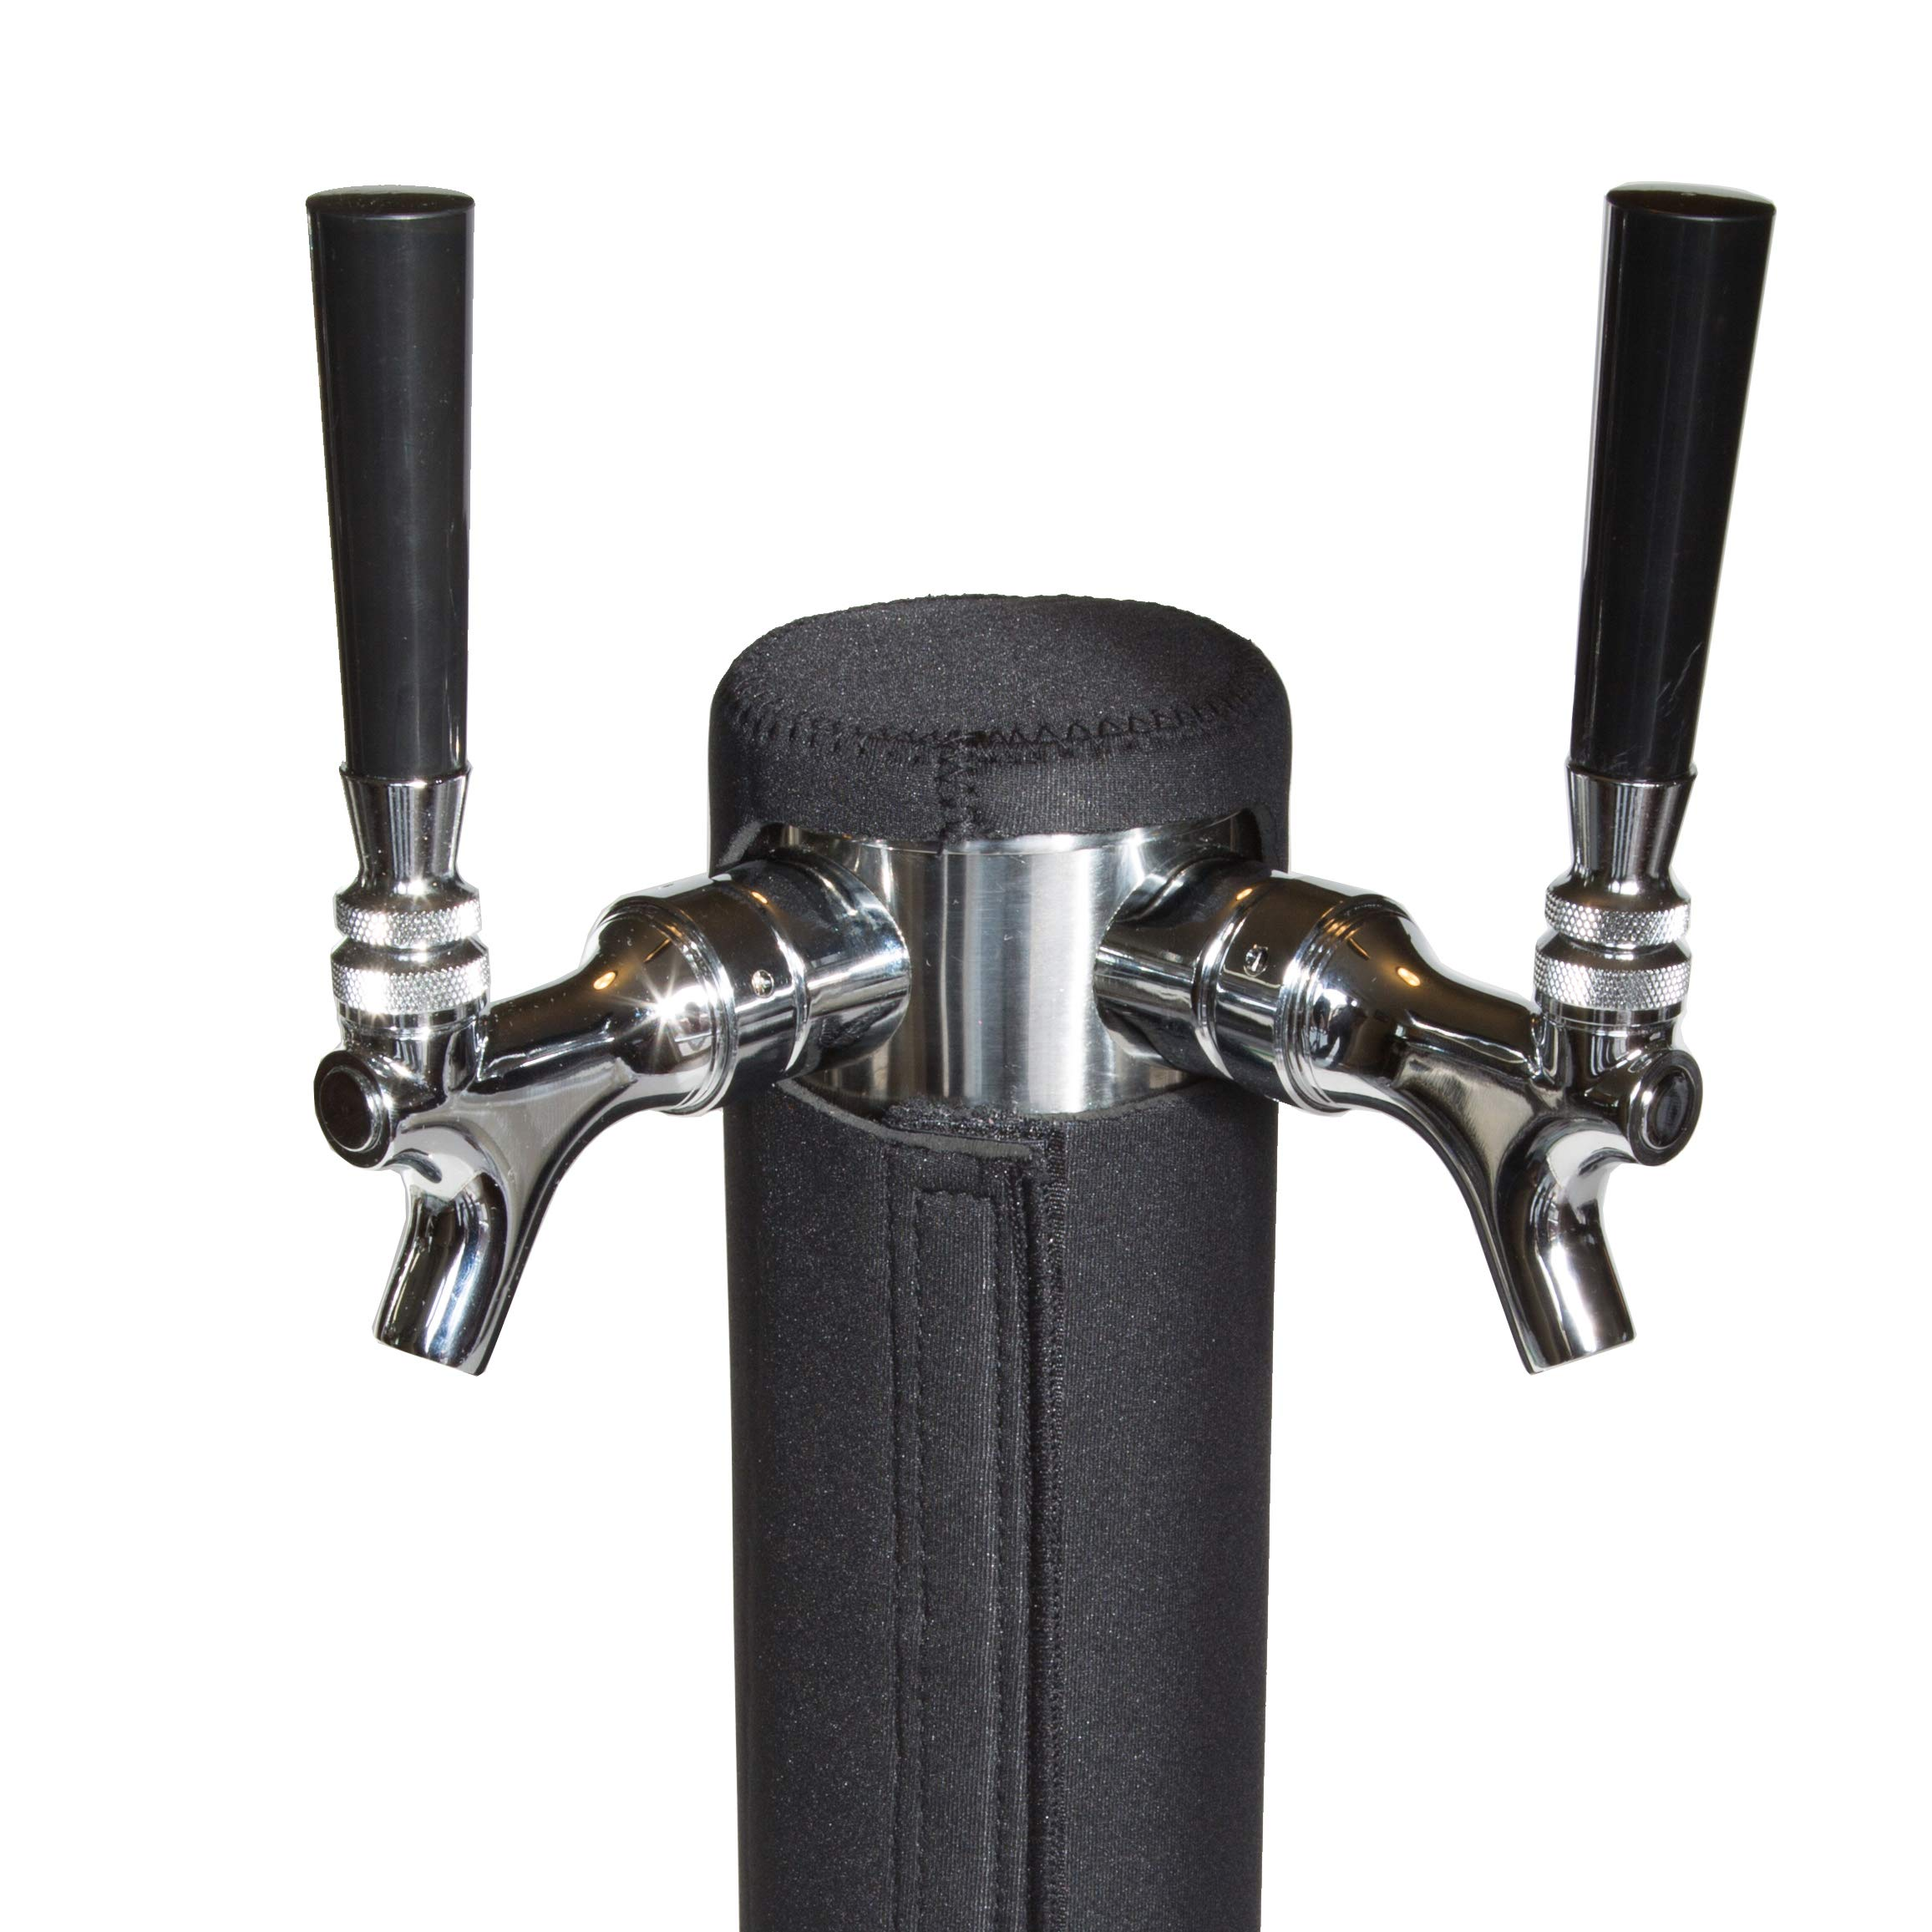 Kegerator Tower Cooler Insulator for Beer Tap Towers by Redwood Brew Supply (3.0'' Diameter Double Tap Plus Beer Tower)